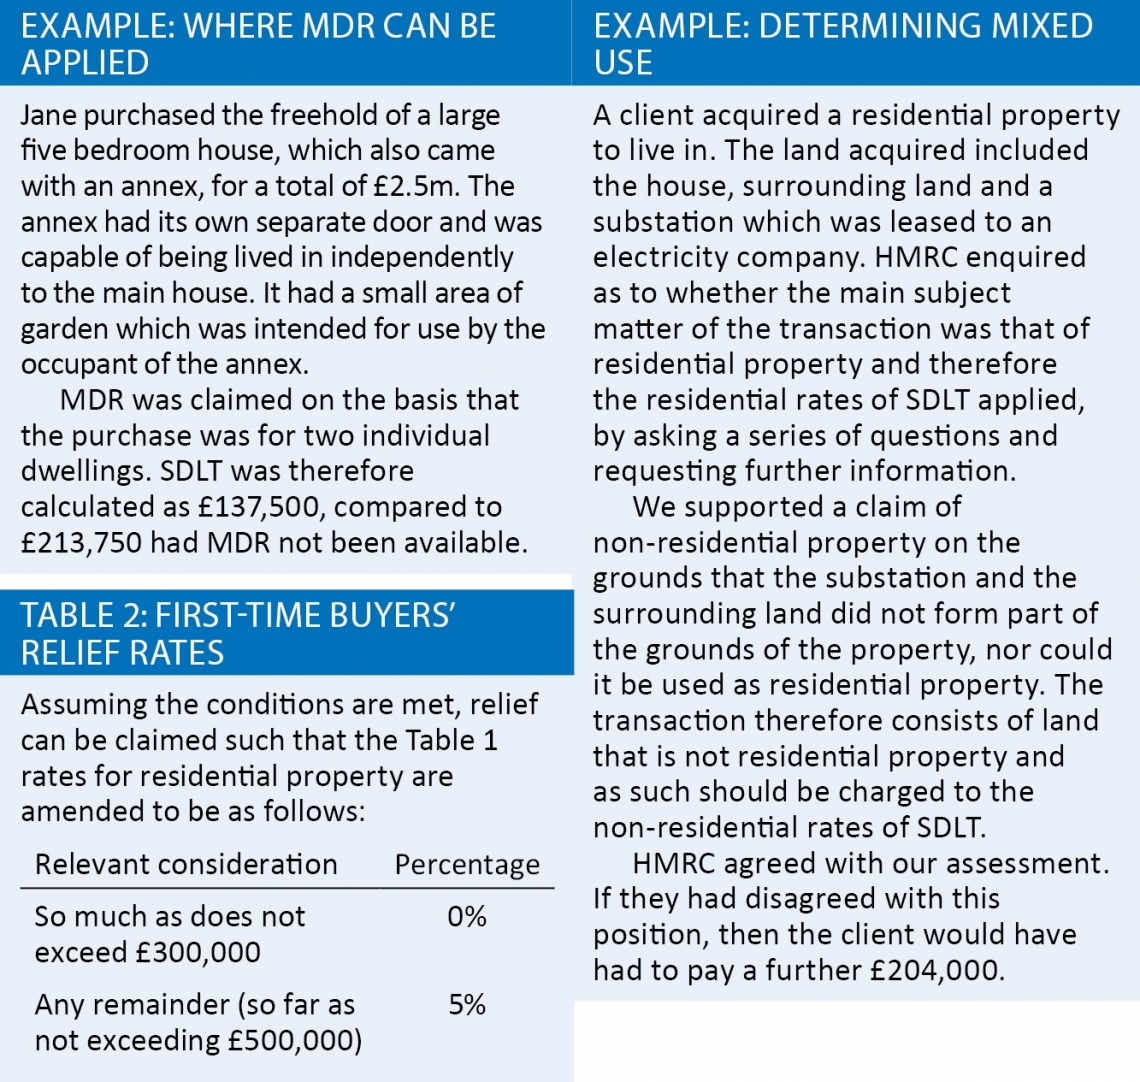 first-time buyers' relief rates